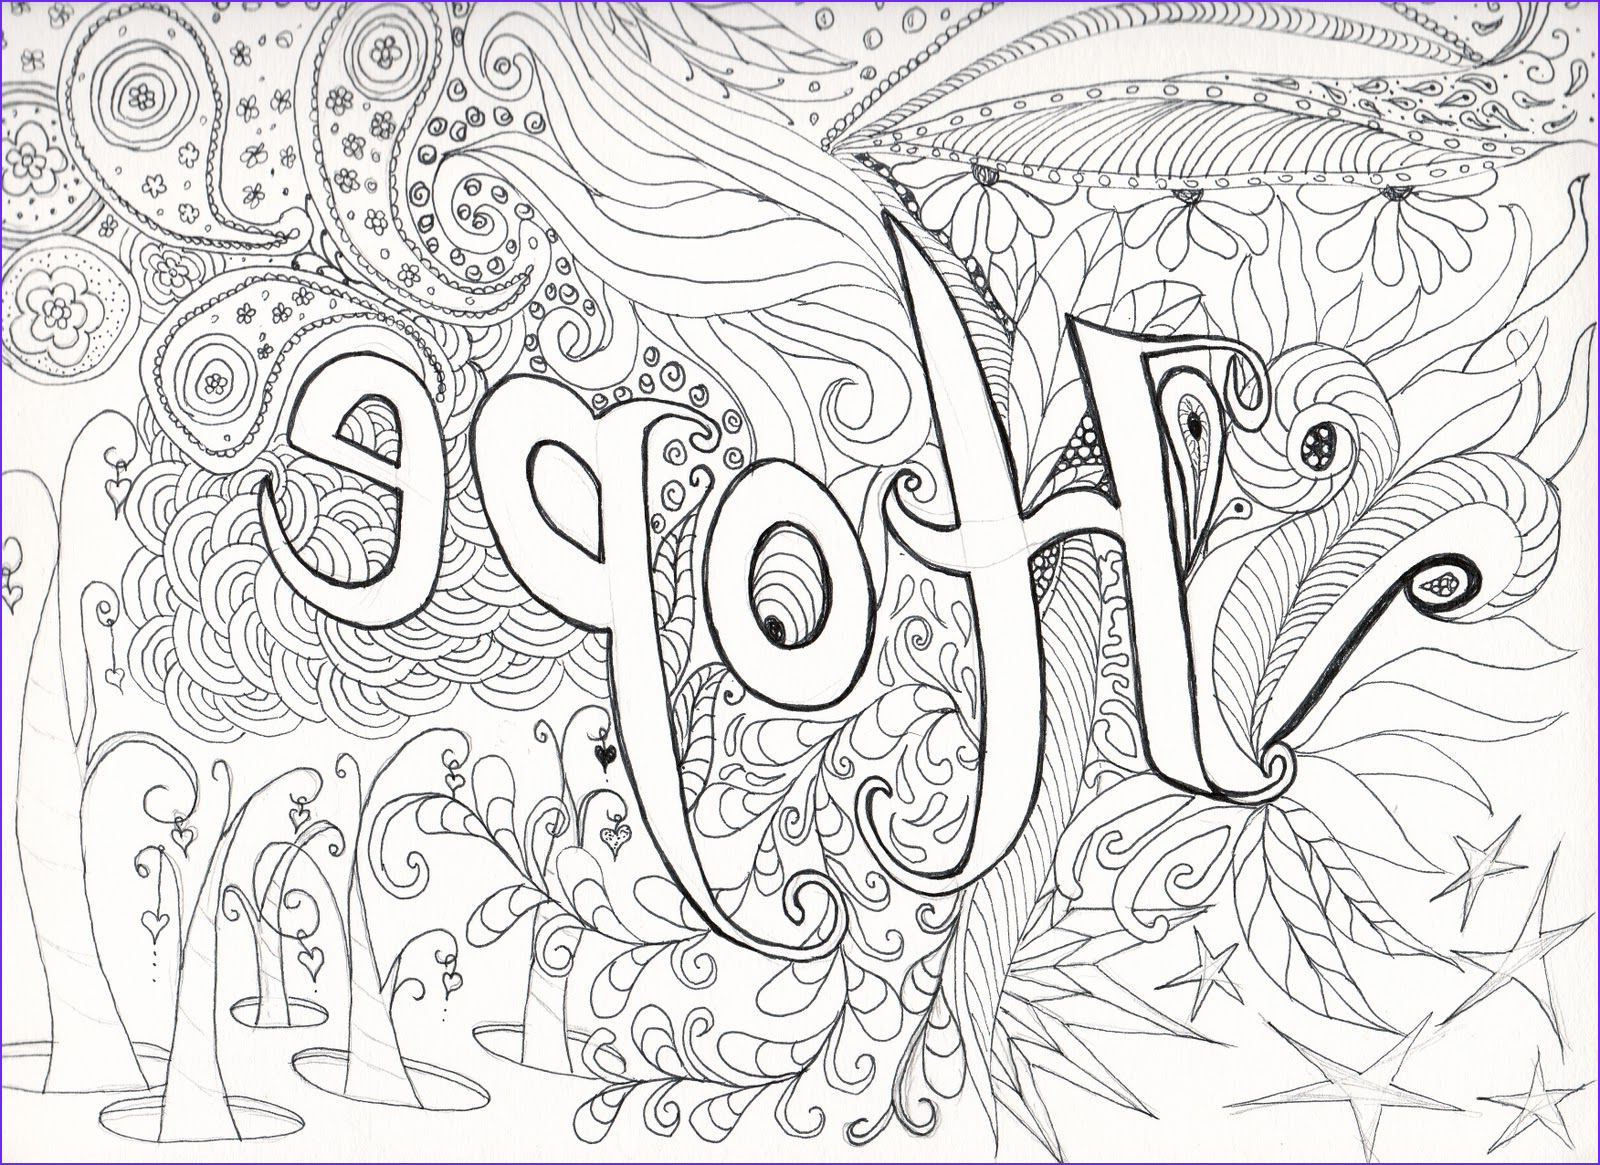 Difficult Coloring Book Beautiful Image Hard Coloring Pages Free